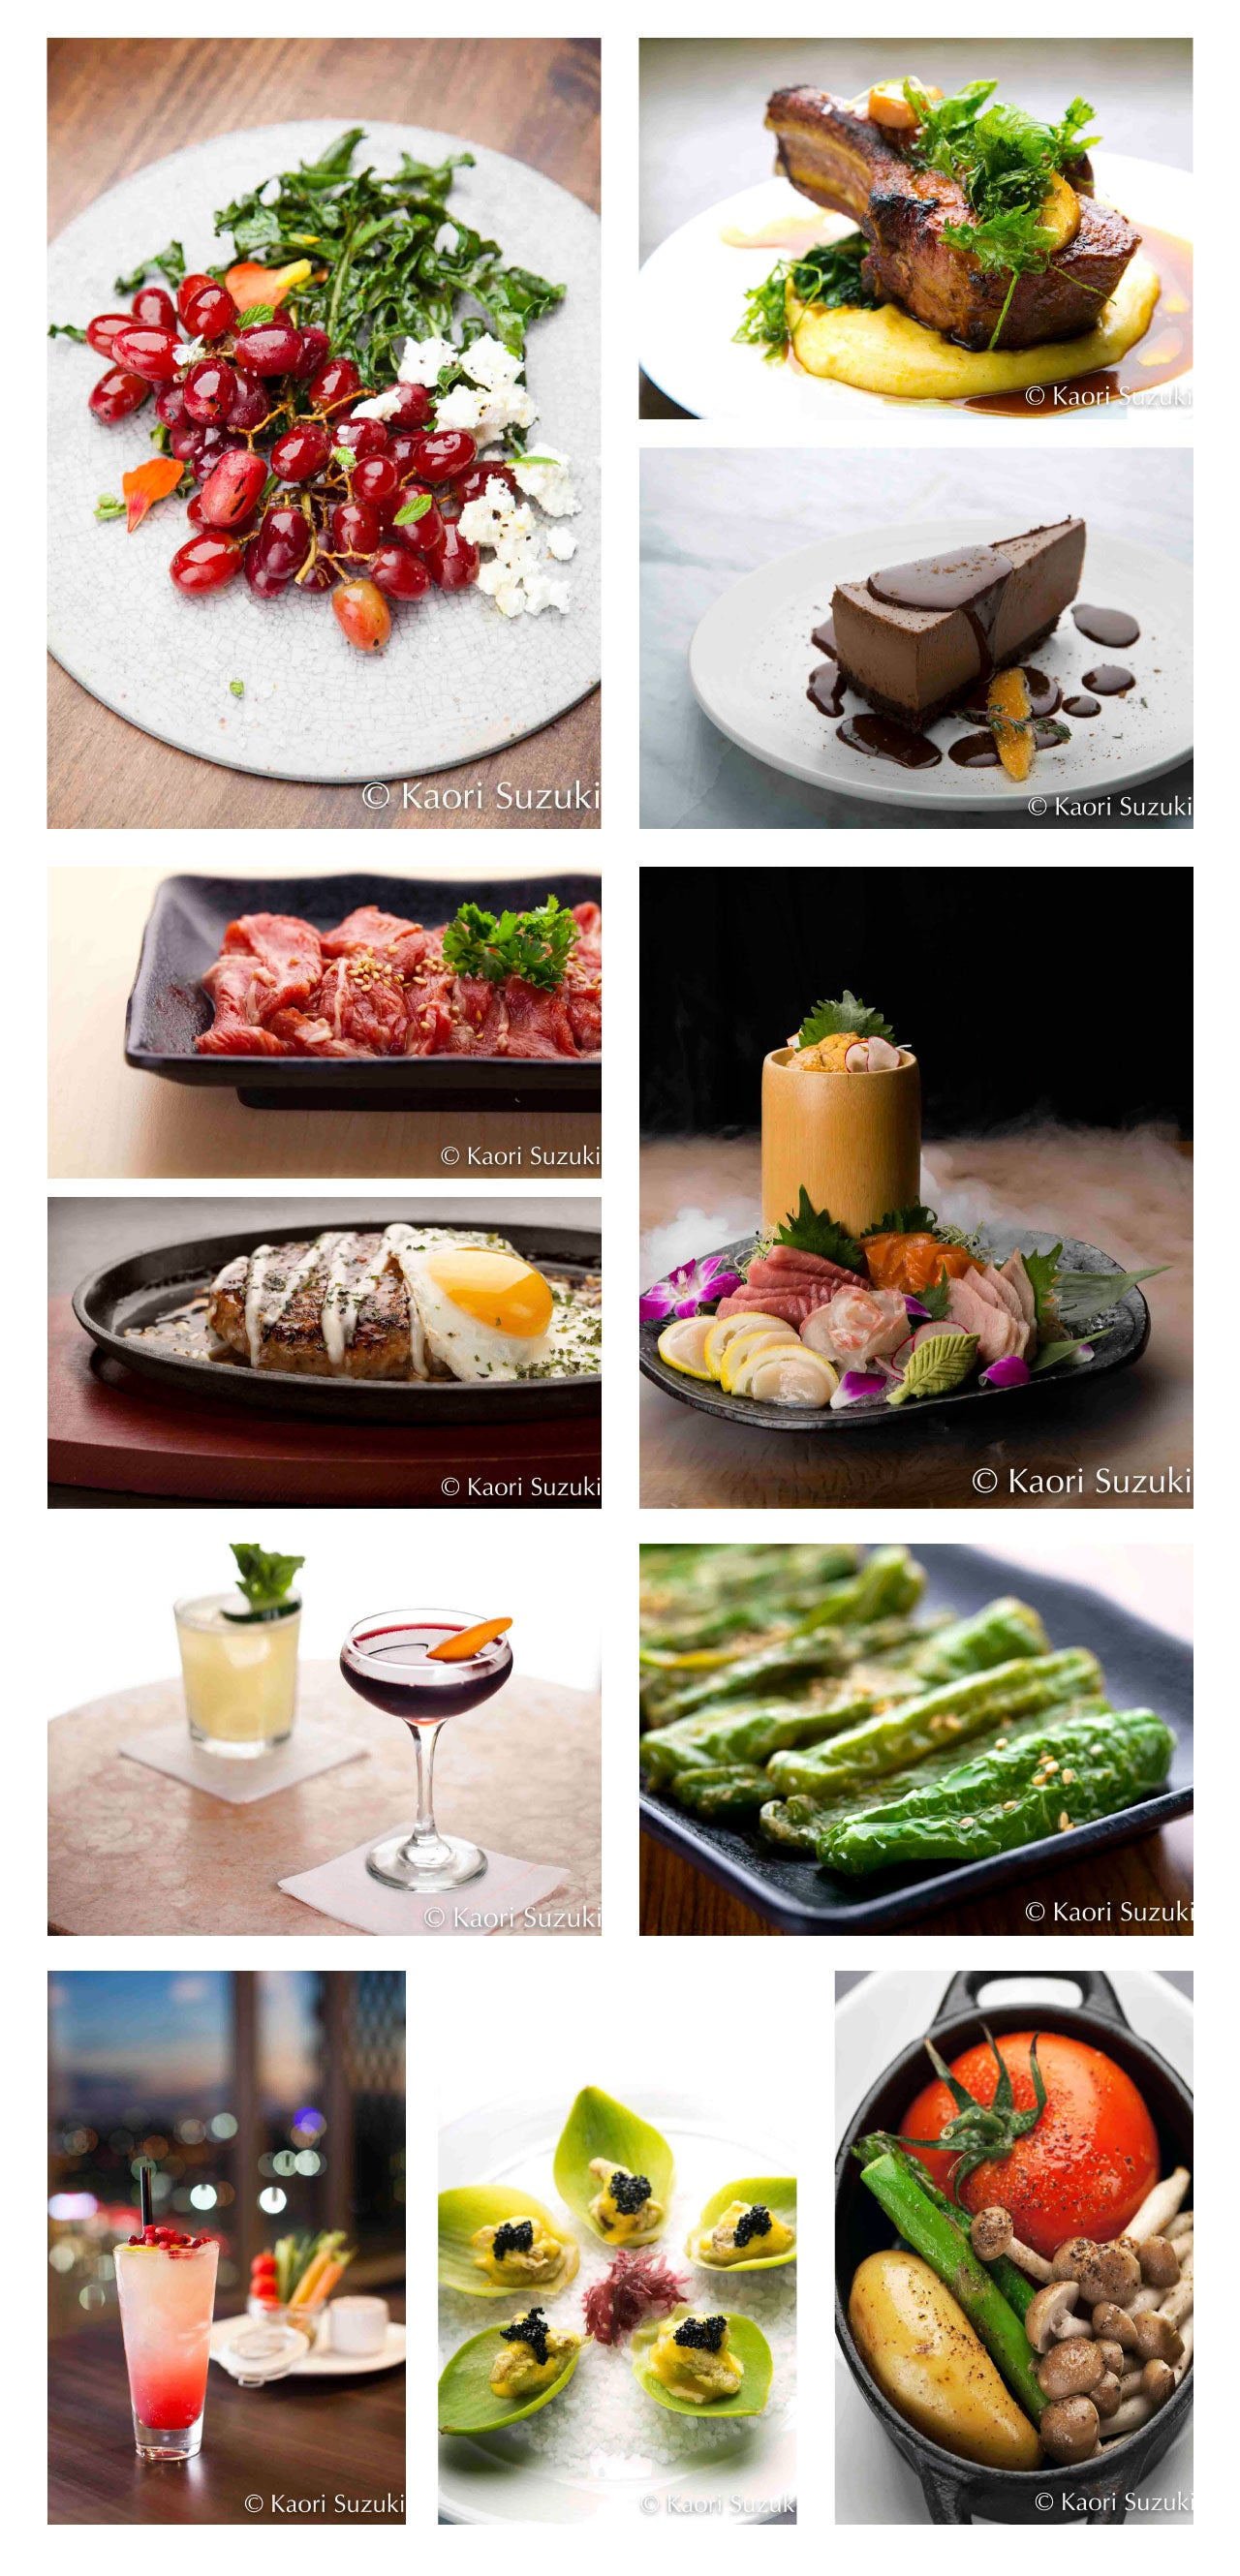 Professional Food Photography Services